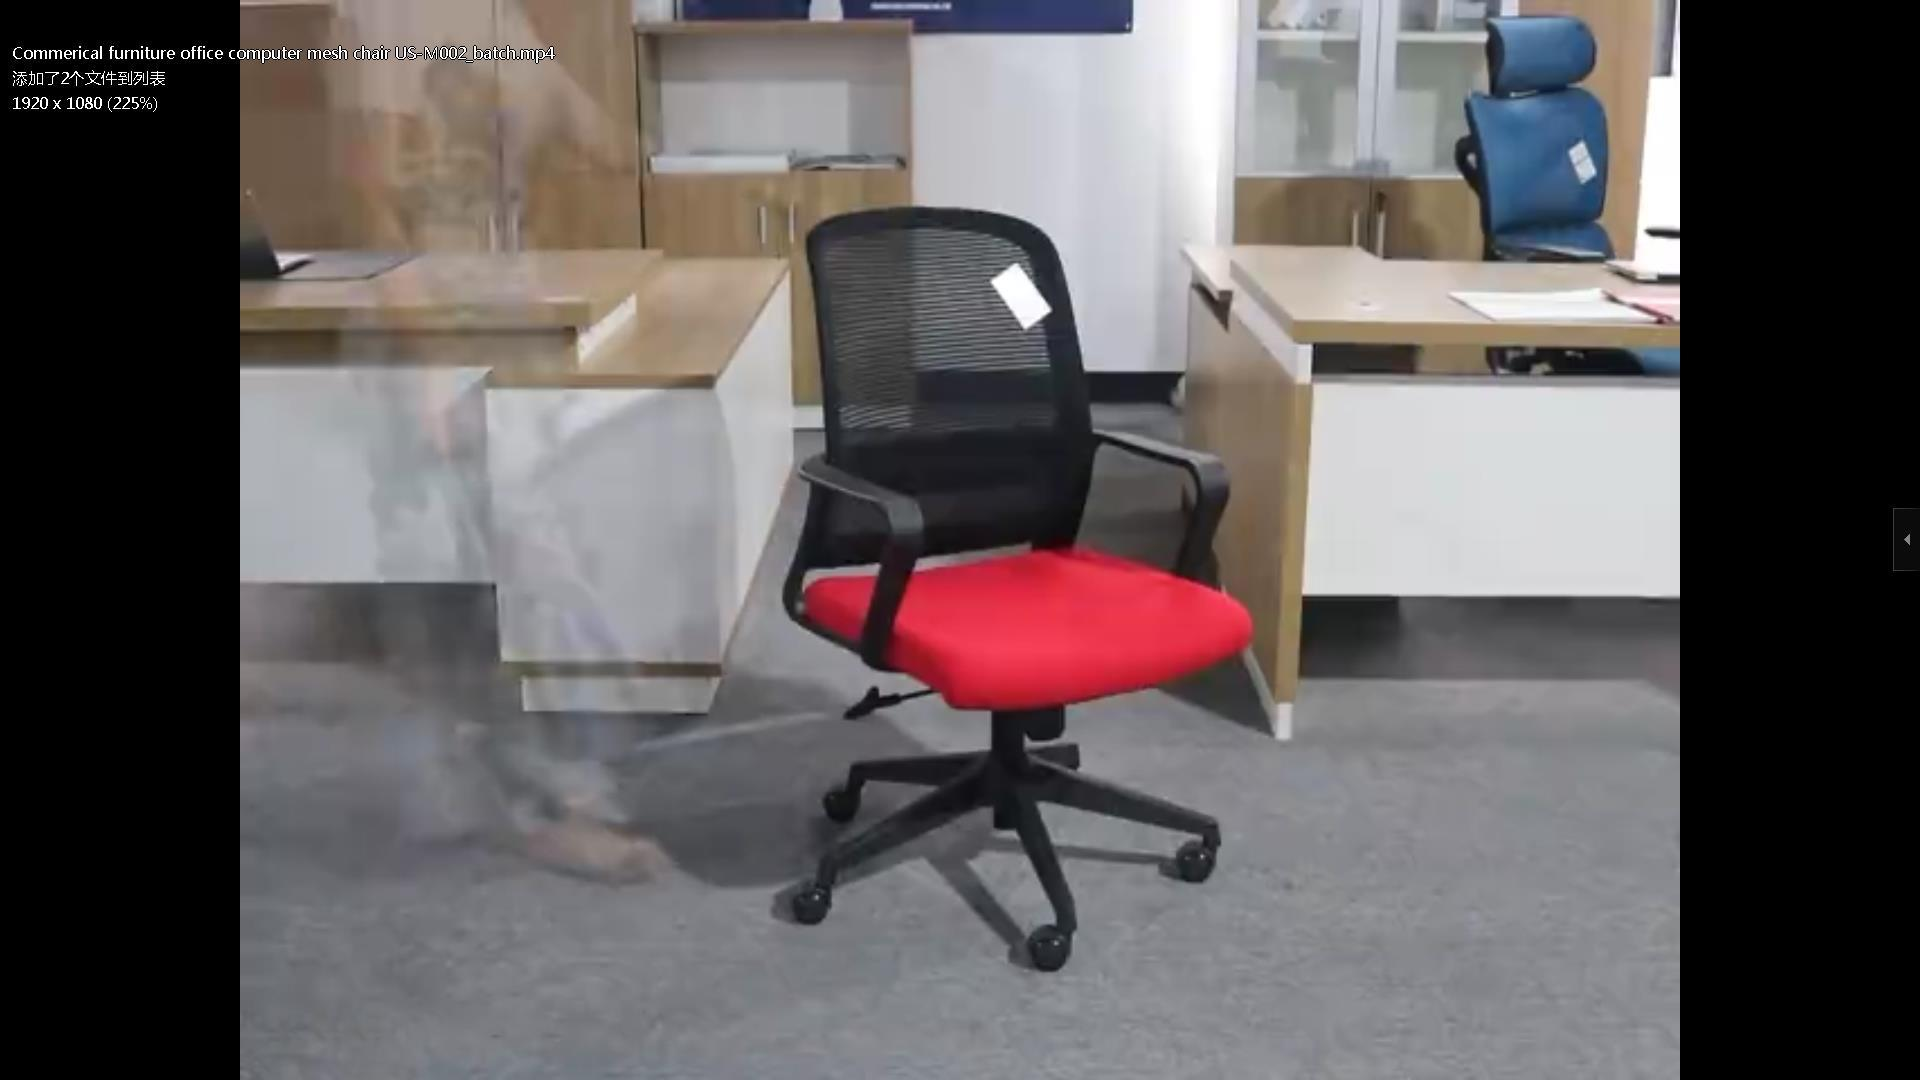 Commerical furniture office computer mesh chair US-M002